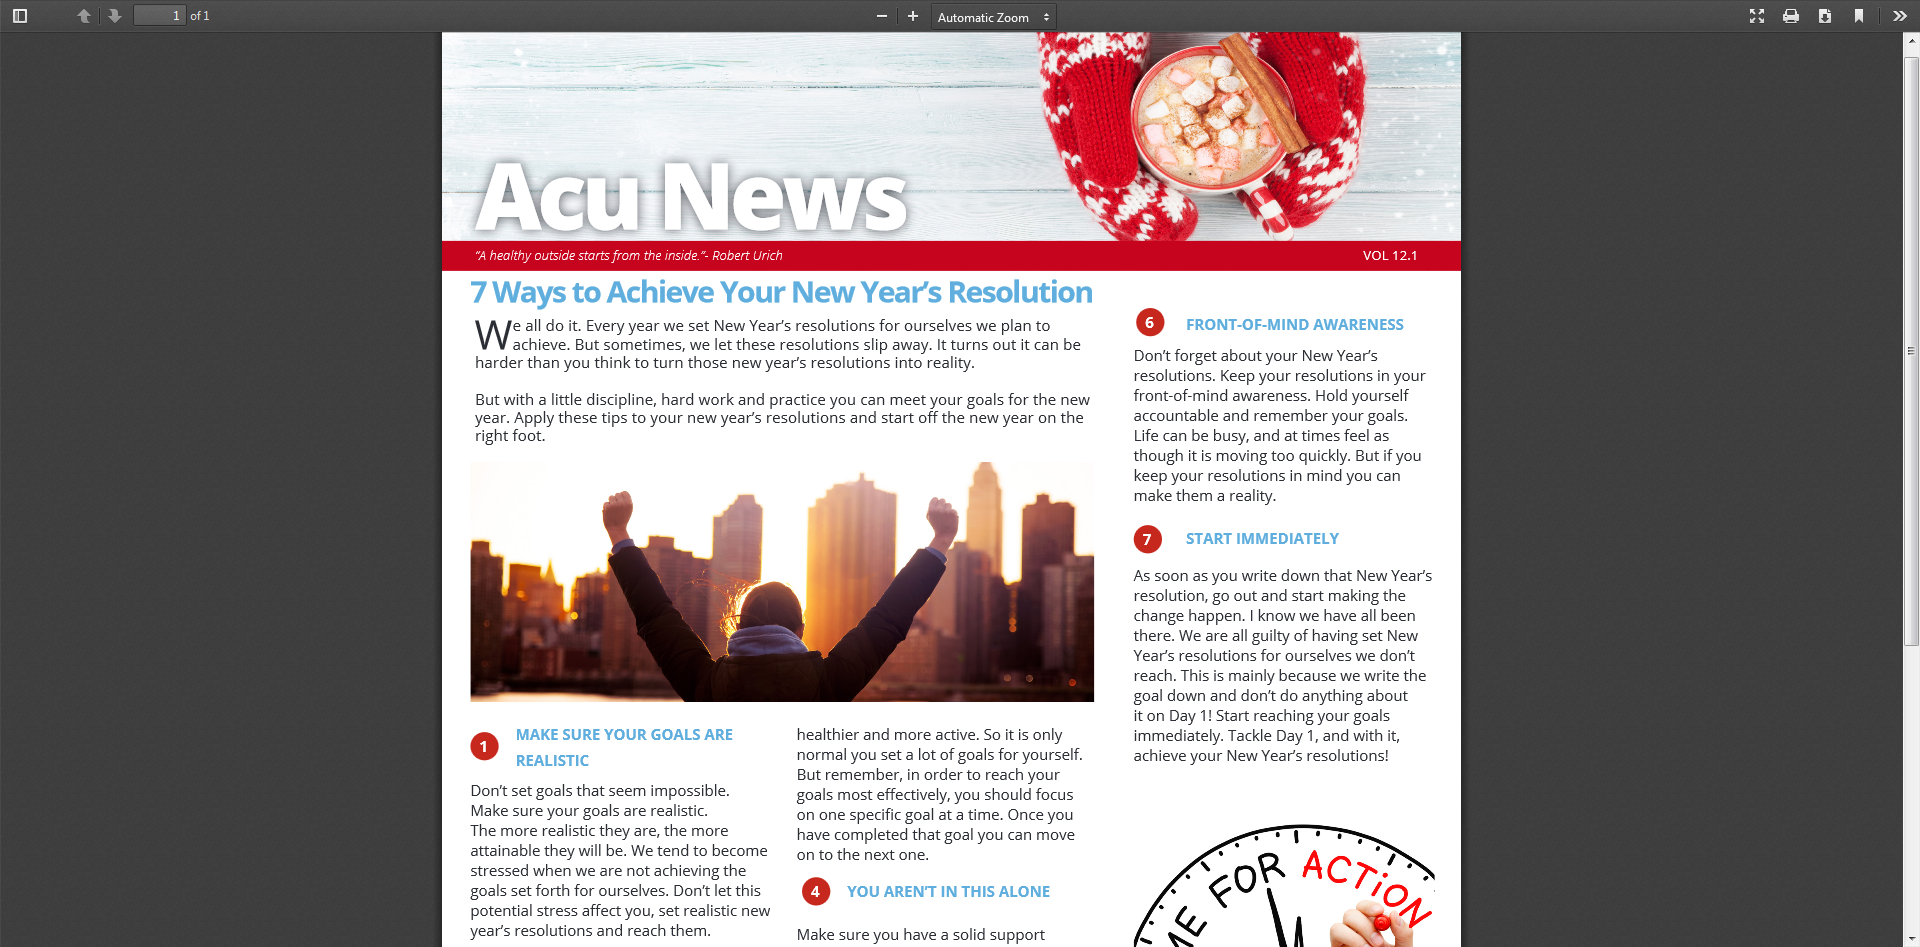 7 Ways to Achieve Your New Year's Resolution for 2018 – AcuNews 12.1